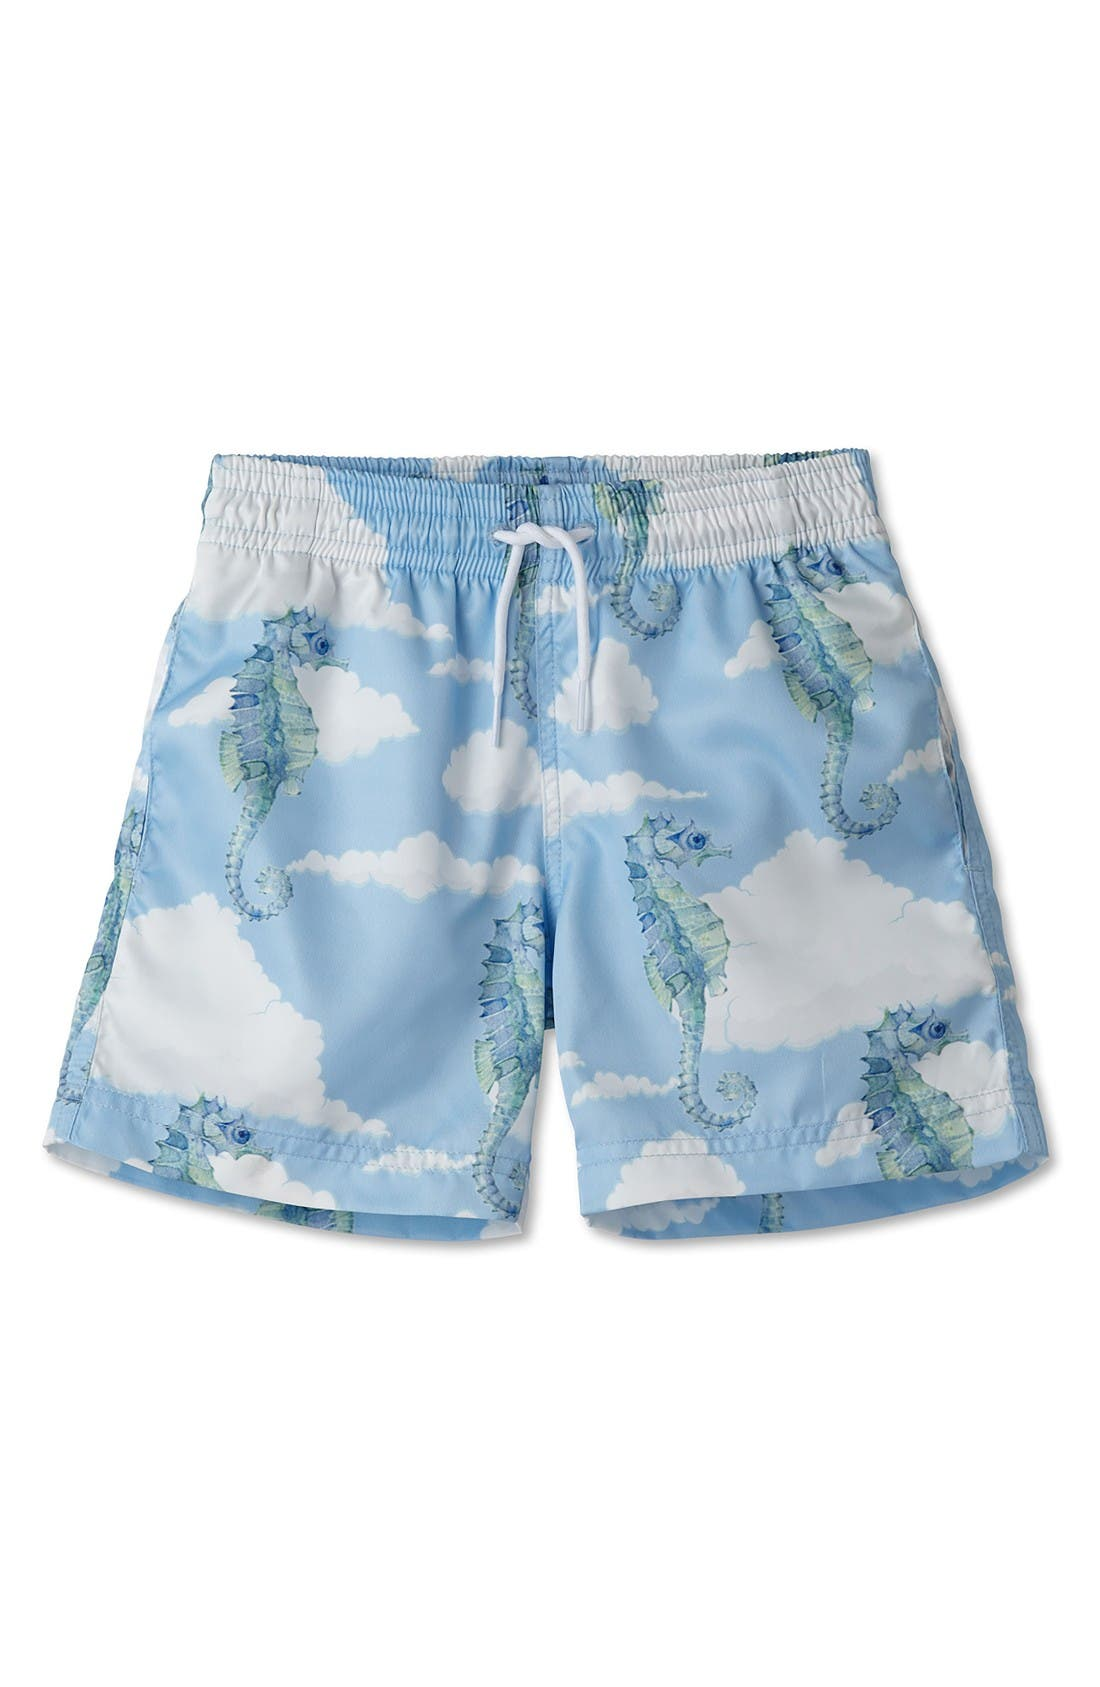 Alternate Image 1 Selected - Stella Cove Seahorse Swim Trunks (Toddler Boys & Little Boys)